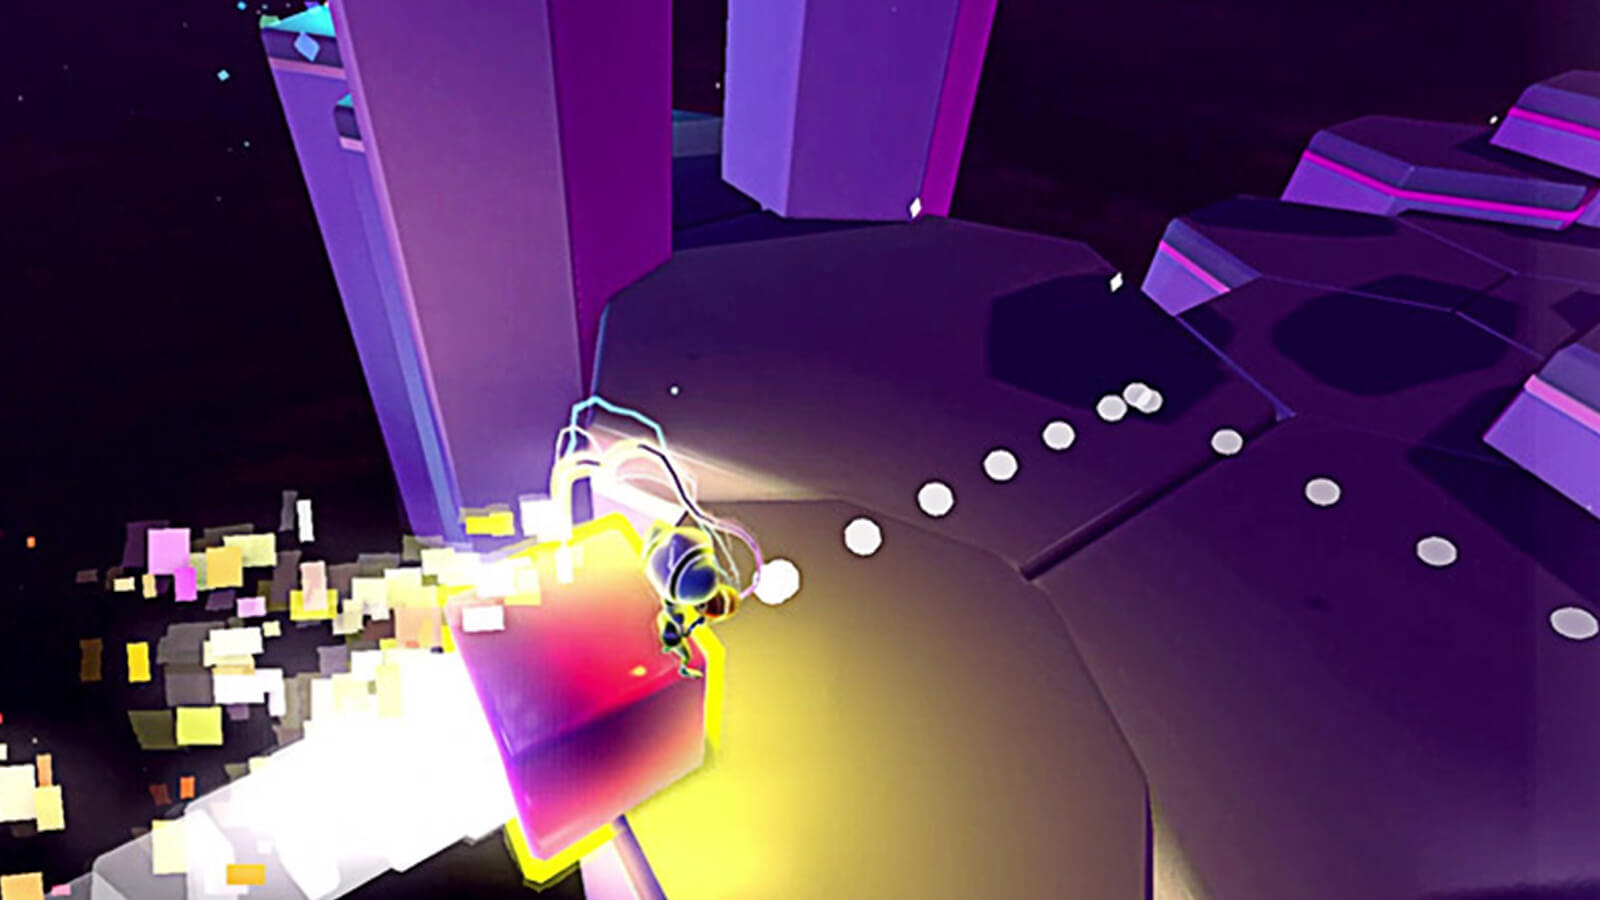 The player's character is propelled forward on a block as white spheres appear in front of it